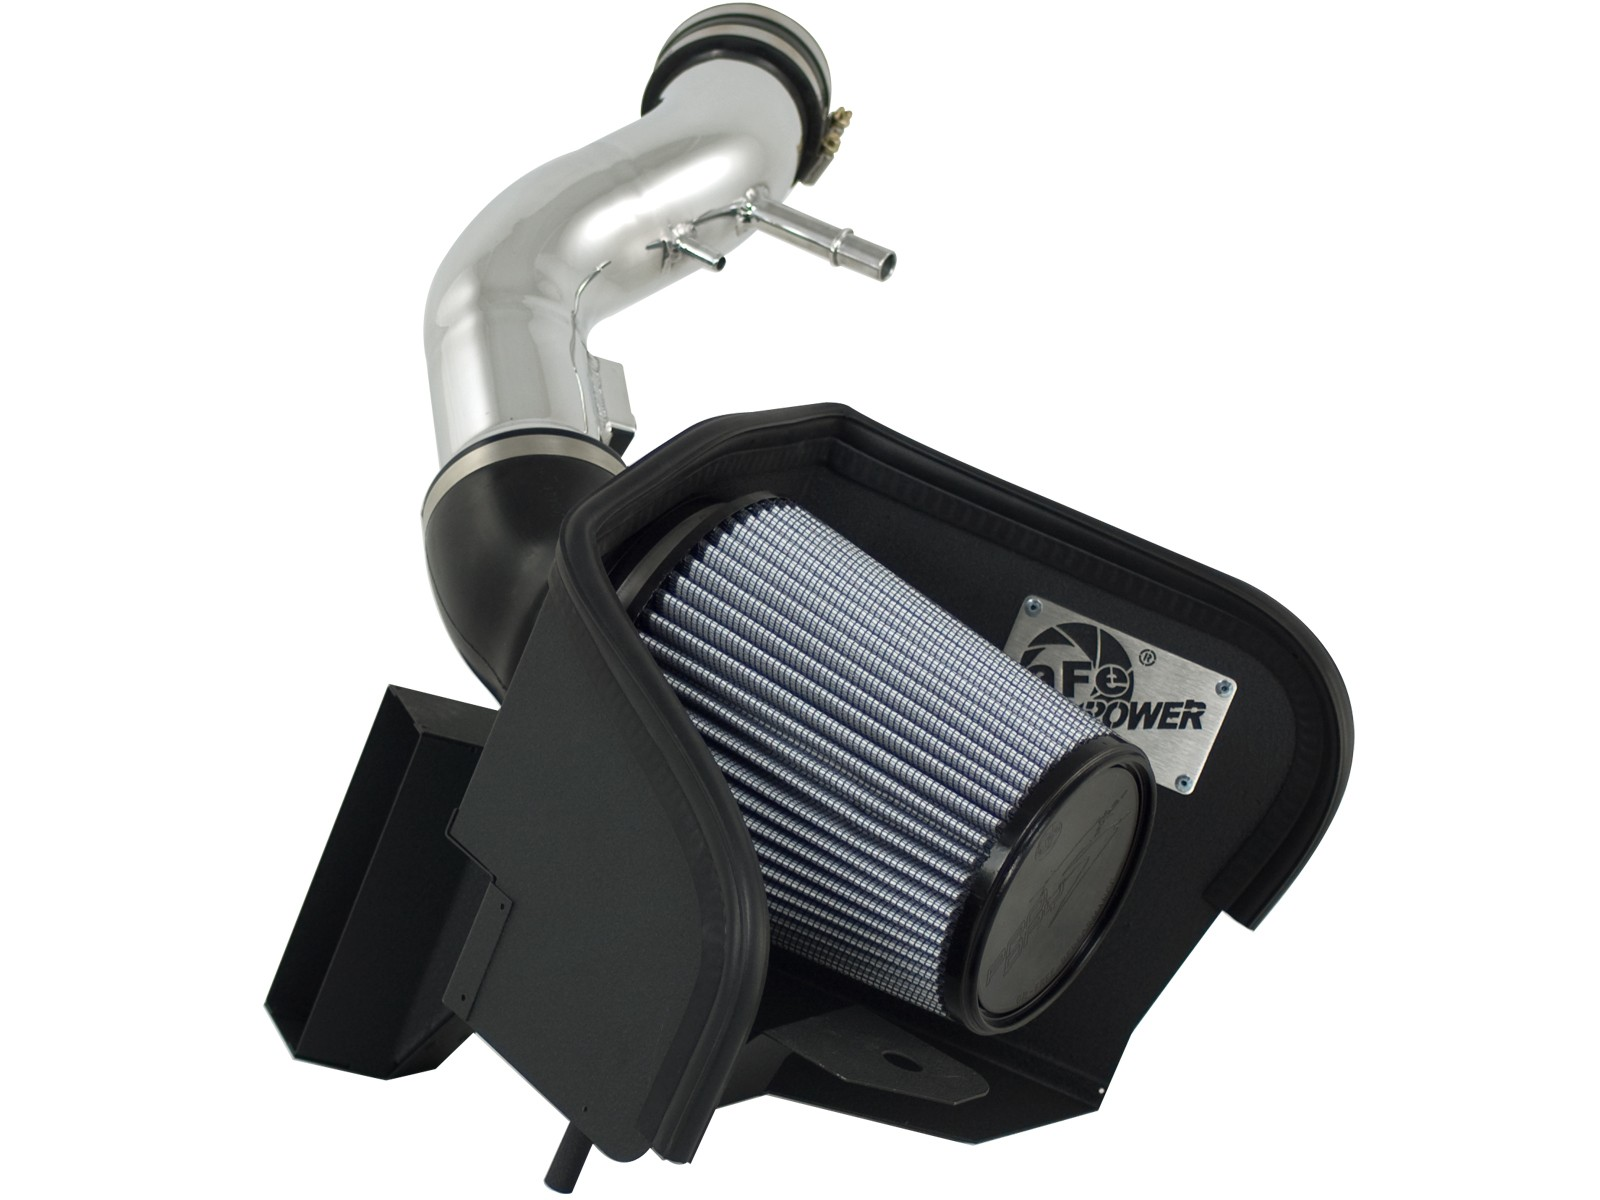 aFe POWER 51-12102-P Magnum FORCE Stage-2 Pro DRY S Cold Air Intake System